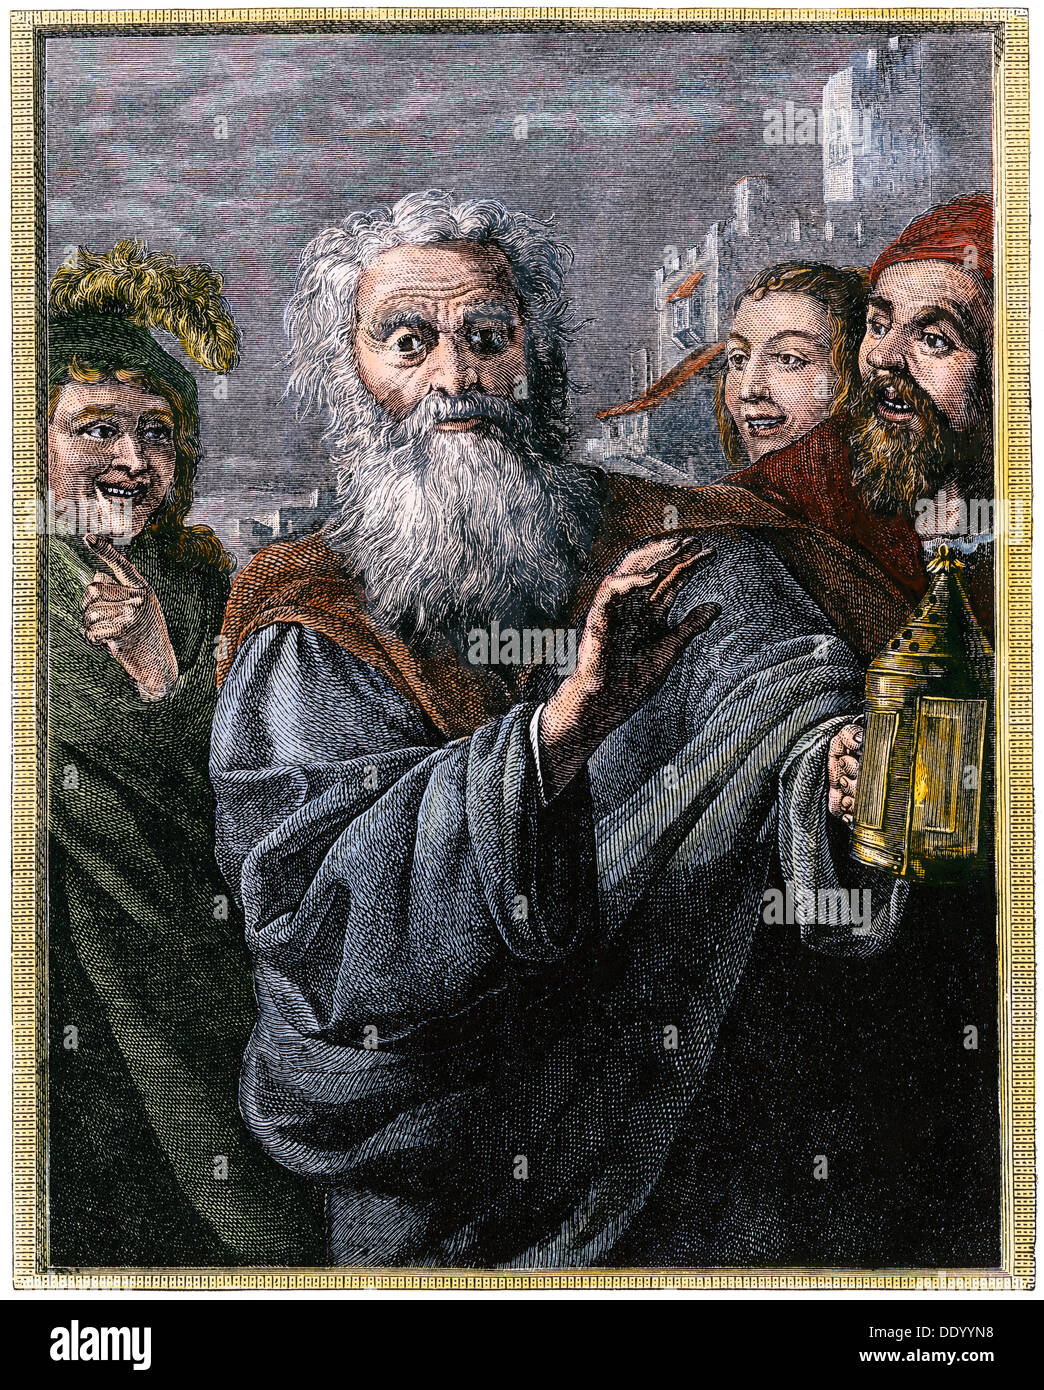 Diogenes in search of an honest man, ancient Greece. Hand-colored woodcut - Stock Image